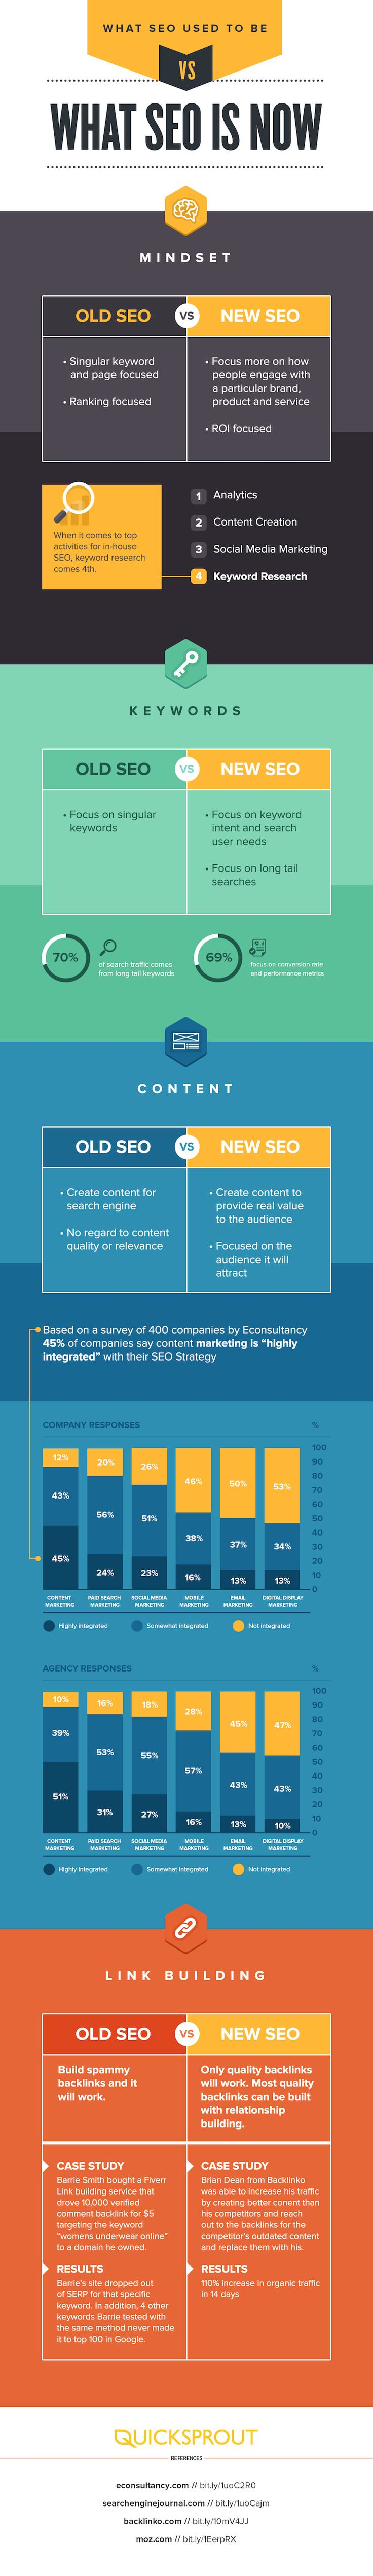 WHAT SEO IS NOW? - Infographic